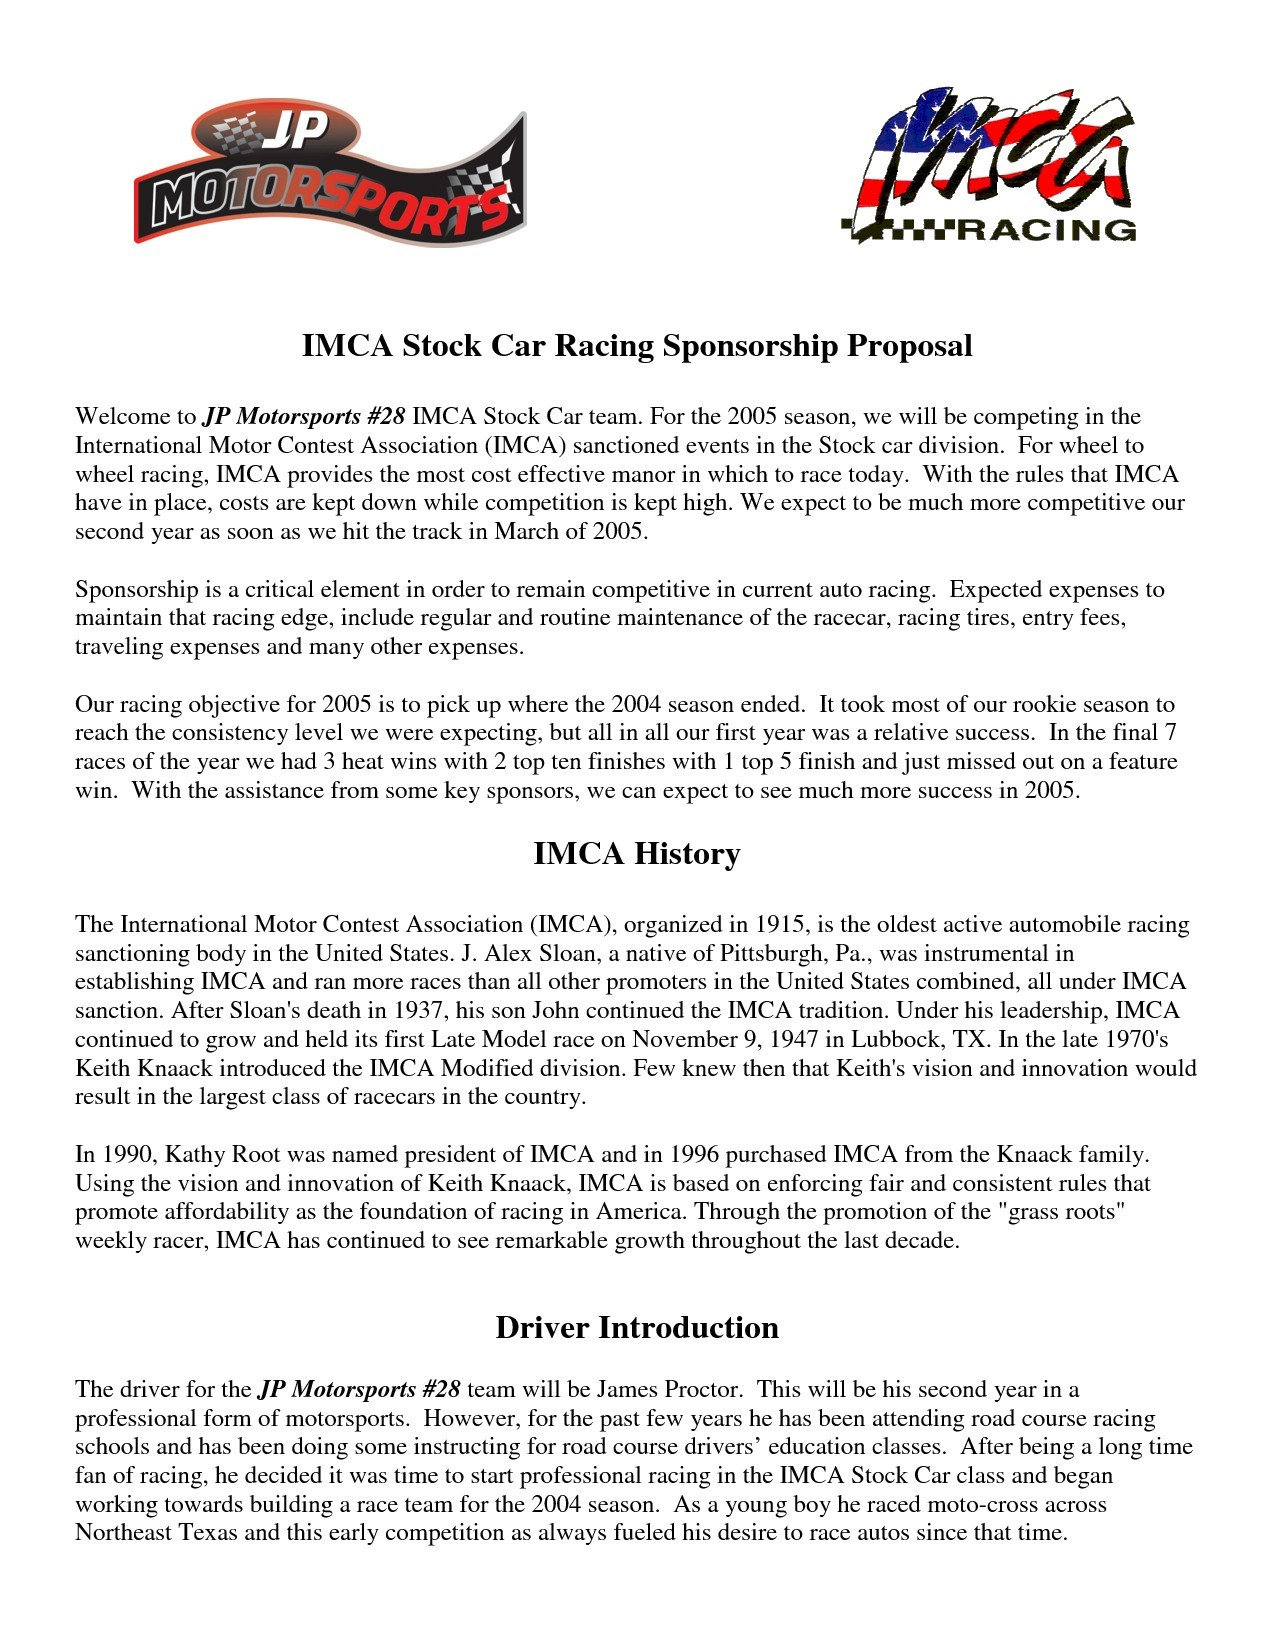 Sponsorship Proposal Letter Template - Motorsports Sponsorship Proposal Template